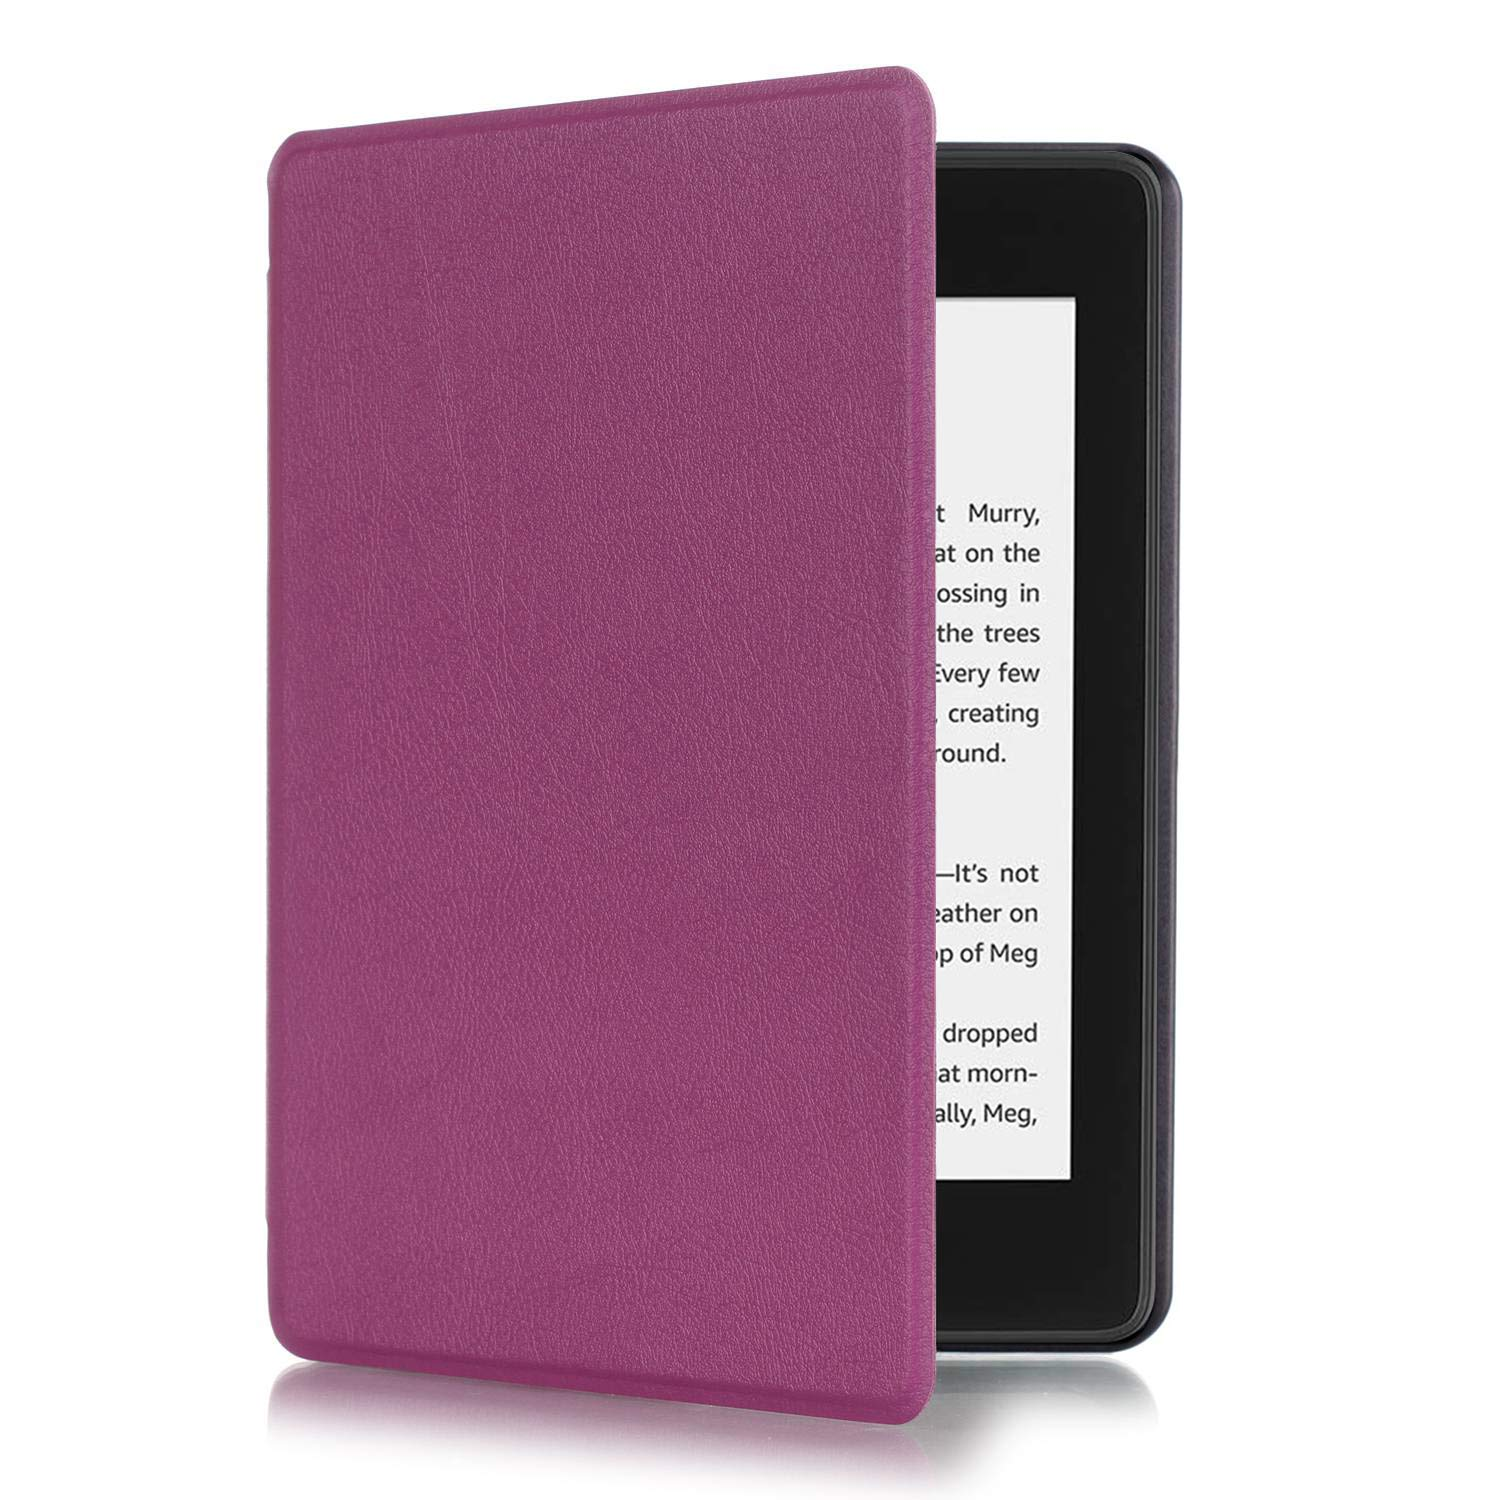 XIHAMA Case for Kindle Paperwhite 10th Generation, 2018 Release Purple ,Lightweight PU Leather Smart Shell Cover with Auto Wake/Sleep for  Kindle Paperwhite E-Reader